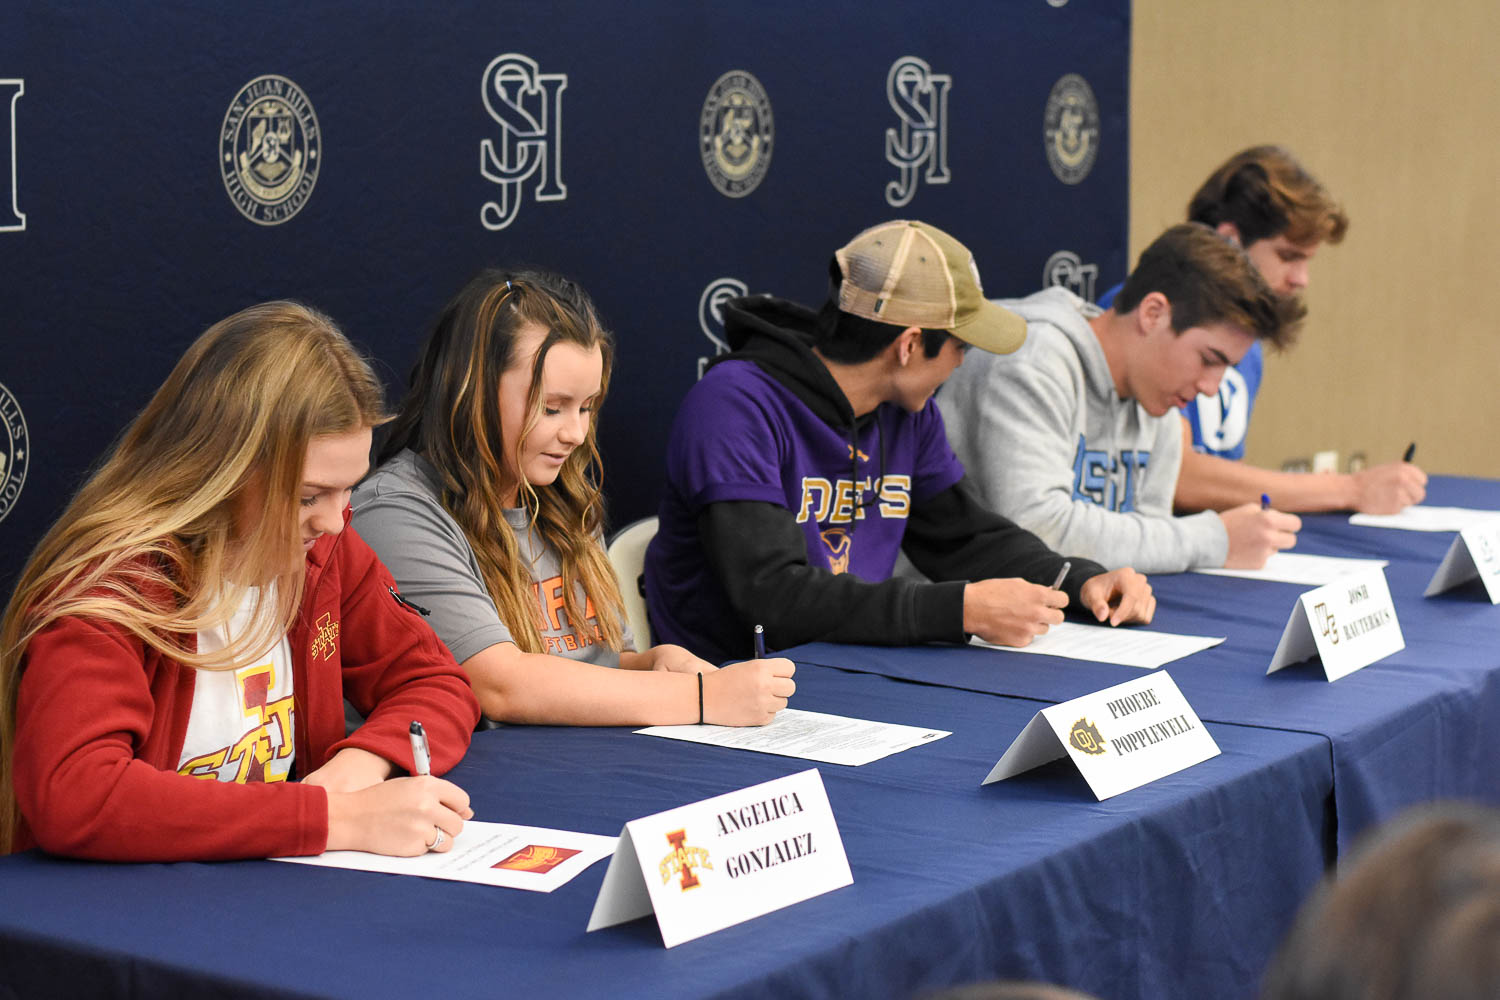 Five Seniors signed their National Letters of Intent on February 6 during tutorial. Cade Albright will be playing Football at Brigham Young University, and his teammate Carson Lewis will also be playing Football at the University of San Diego. Angelica Gonzalez will be playing Softball at Iowa State University, and her teammate, Phoebe Popplewell will be playing Softball at Ottawa University. Joshua Rauterkus signs his Letter of Intent to play Baseball at Whittier College.